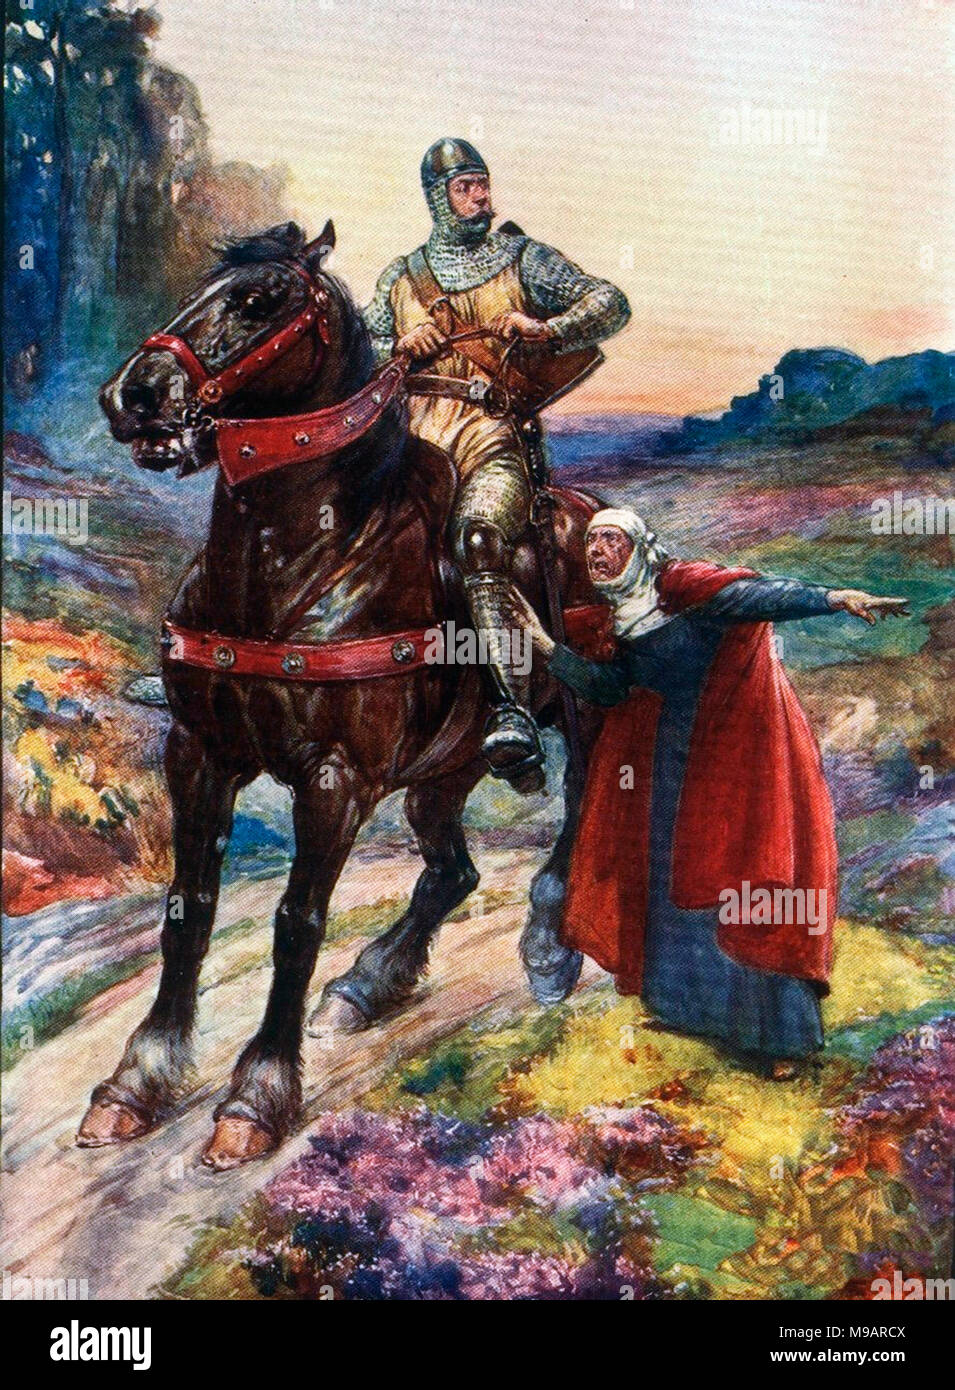 Sir William Wallace (c.1270-1305). Illustration of the Scottish knight and independence fighter from a 1906 childrens' history book entitled 'Scotland's Story' by H E Marshall. - Stock Image